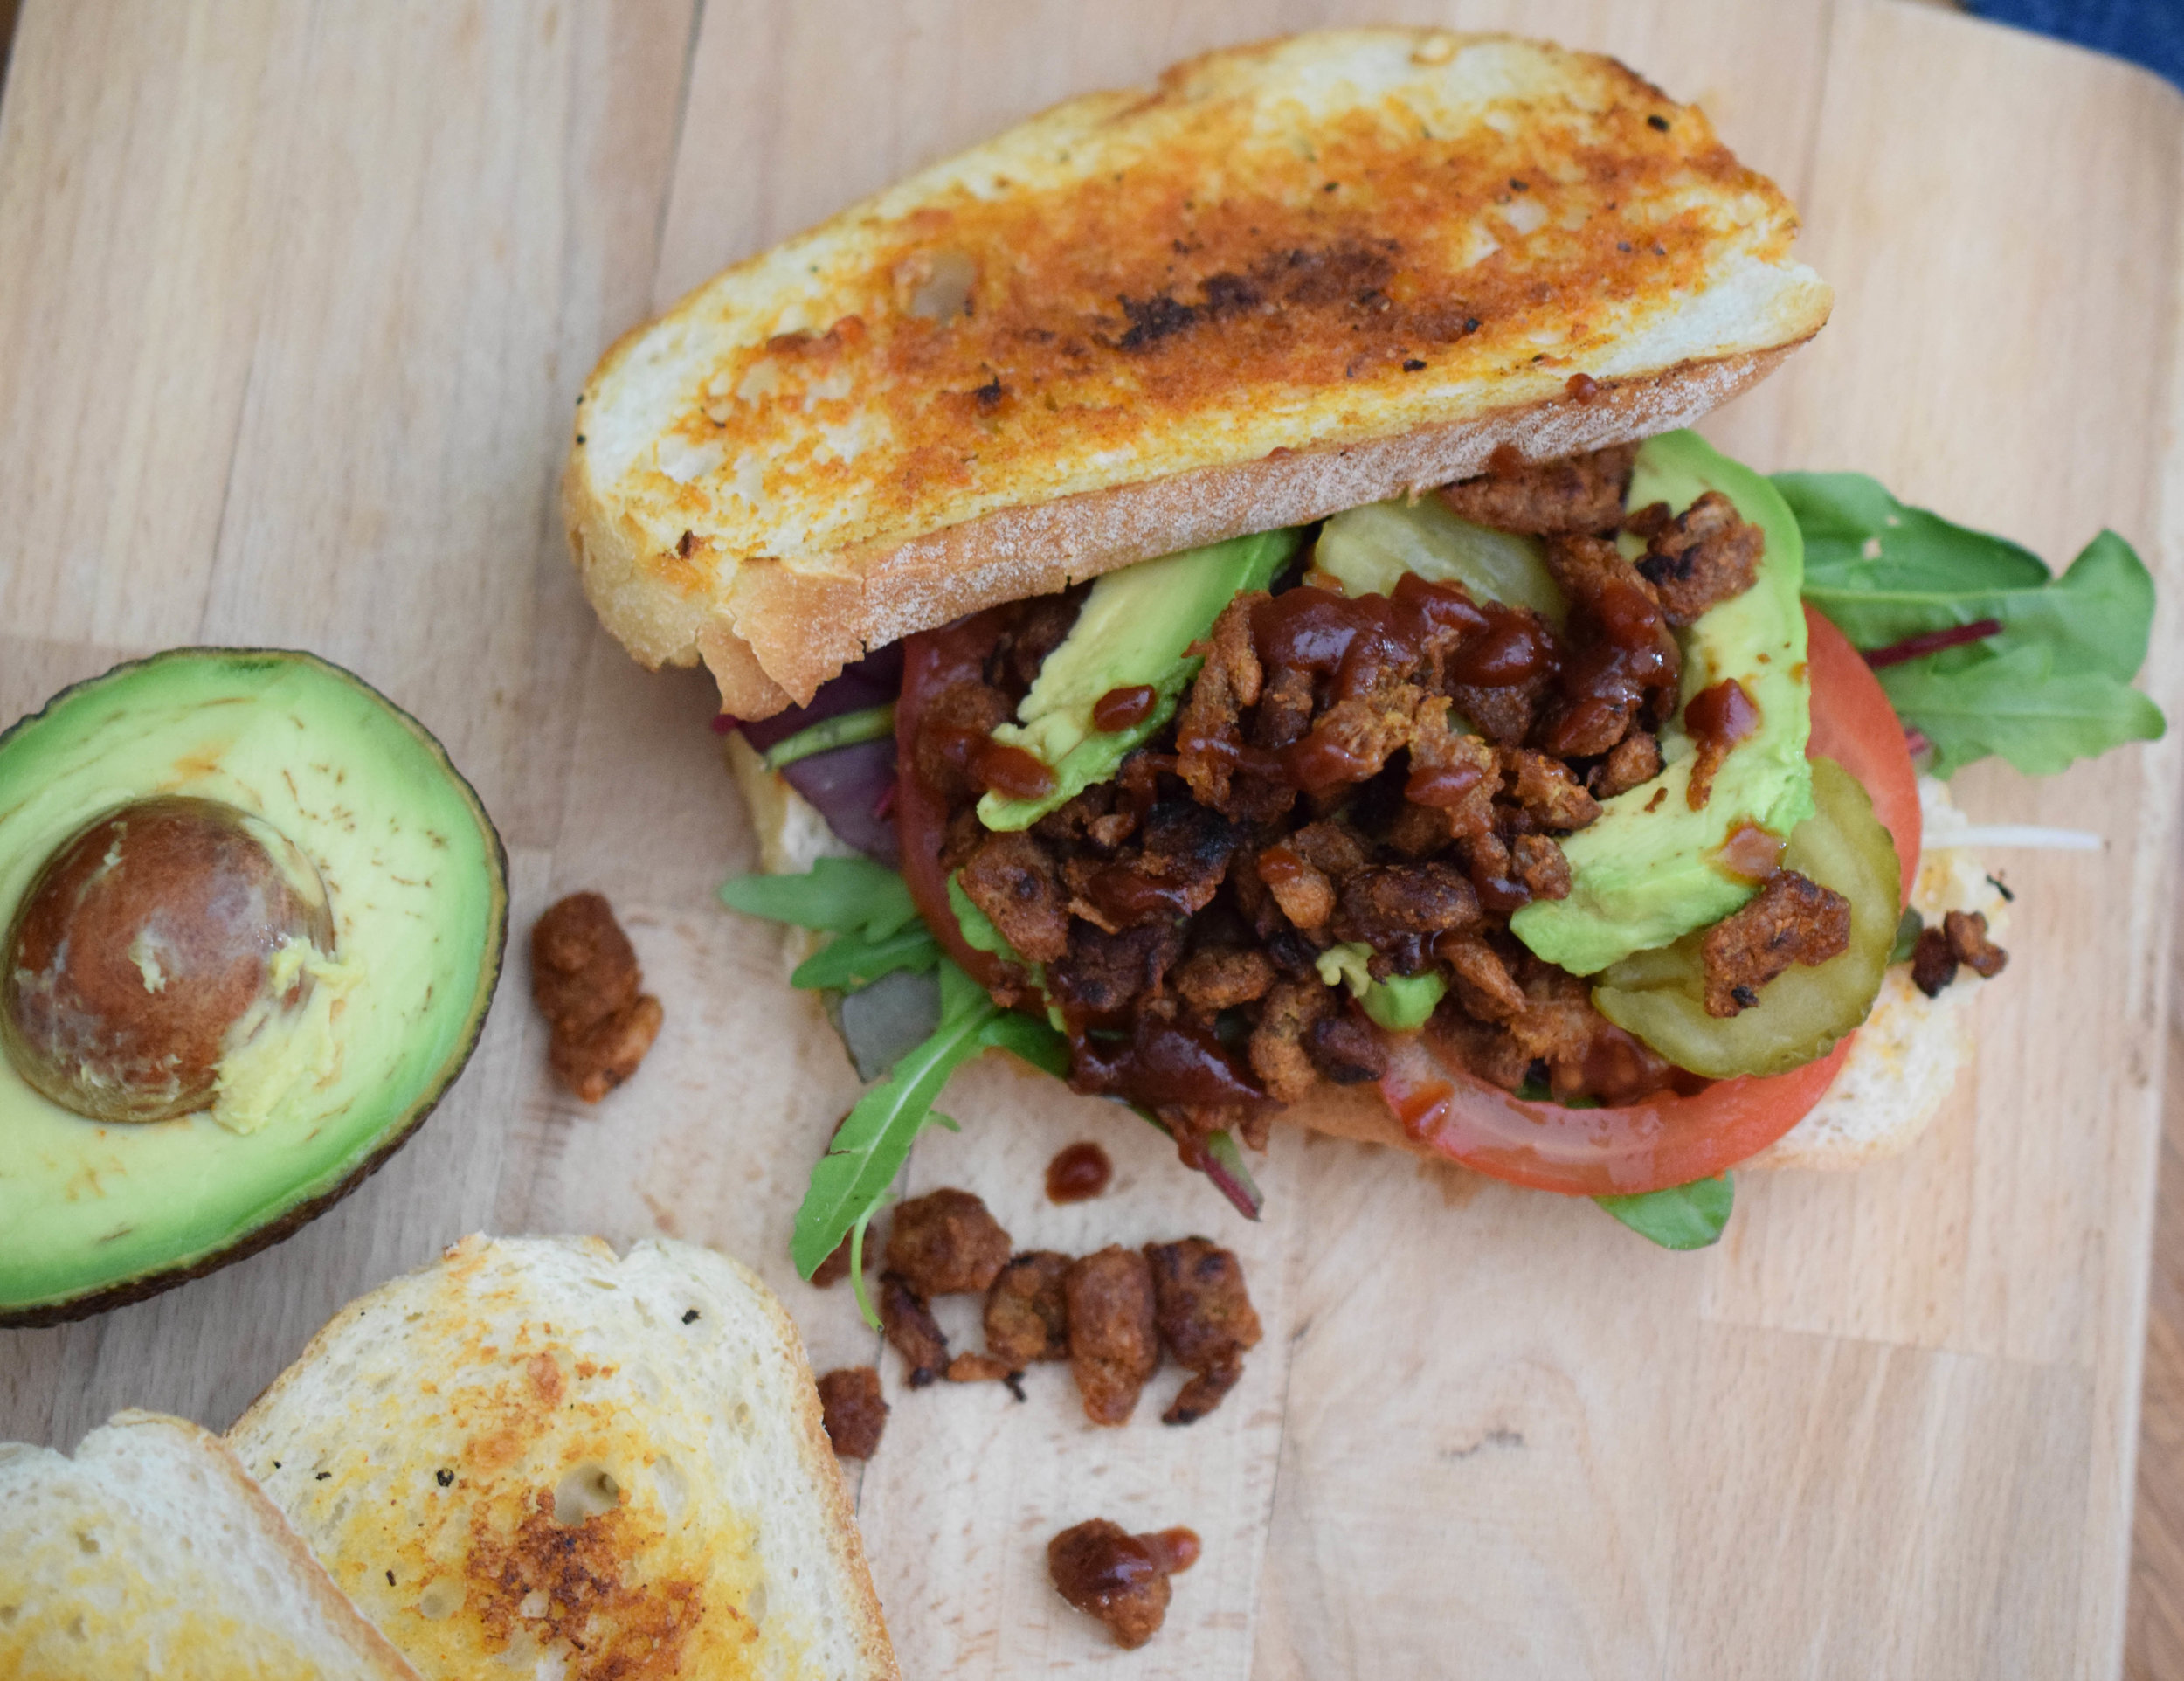 SIRKKIS®-TOAST - Sirkkis®BBQ sauceFrench bread½ dl Olive oil½ teaspoon ofGrill spice1 sml garlic gloveAmerican style pickleAvocadoTomatoSalad mix